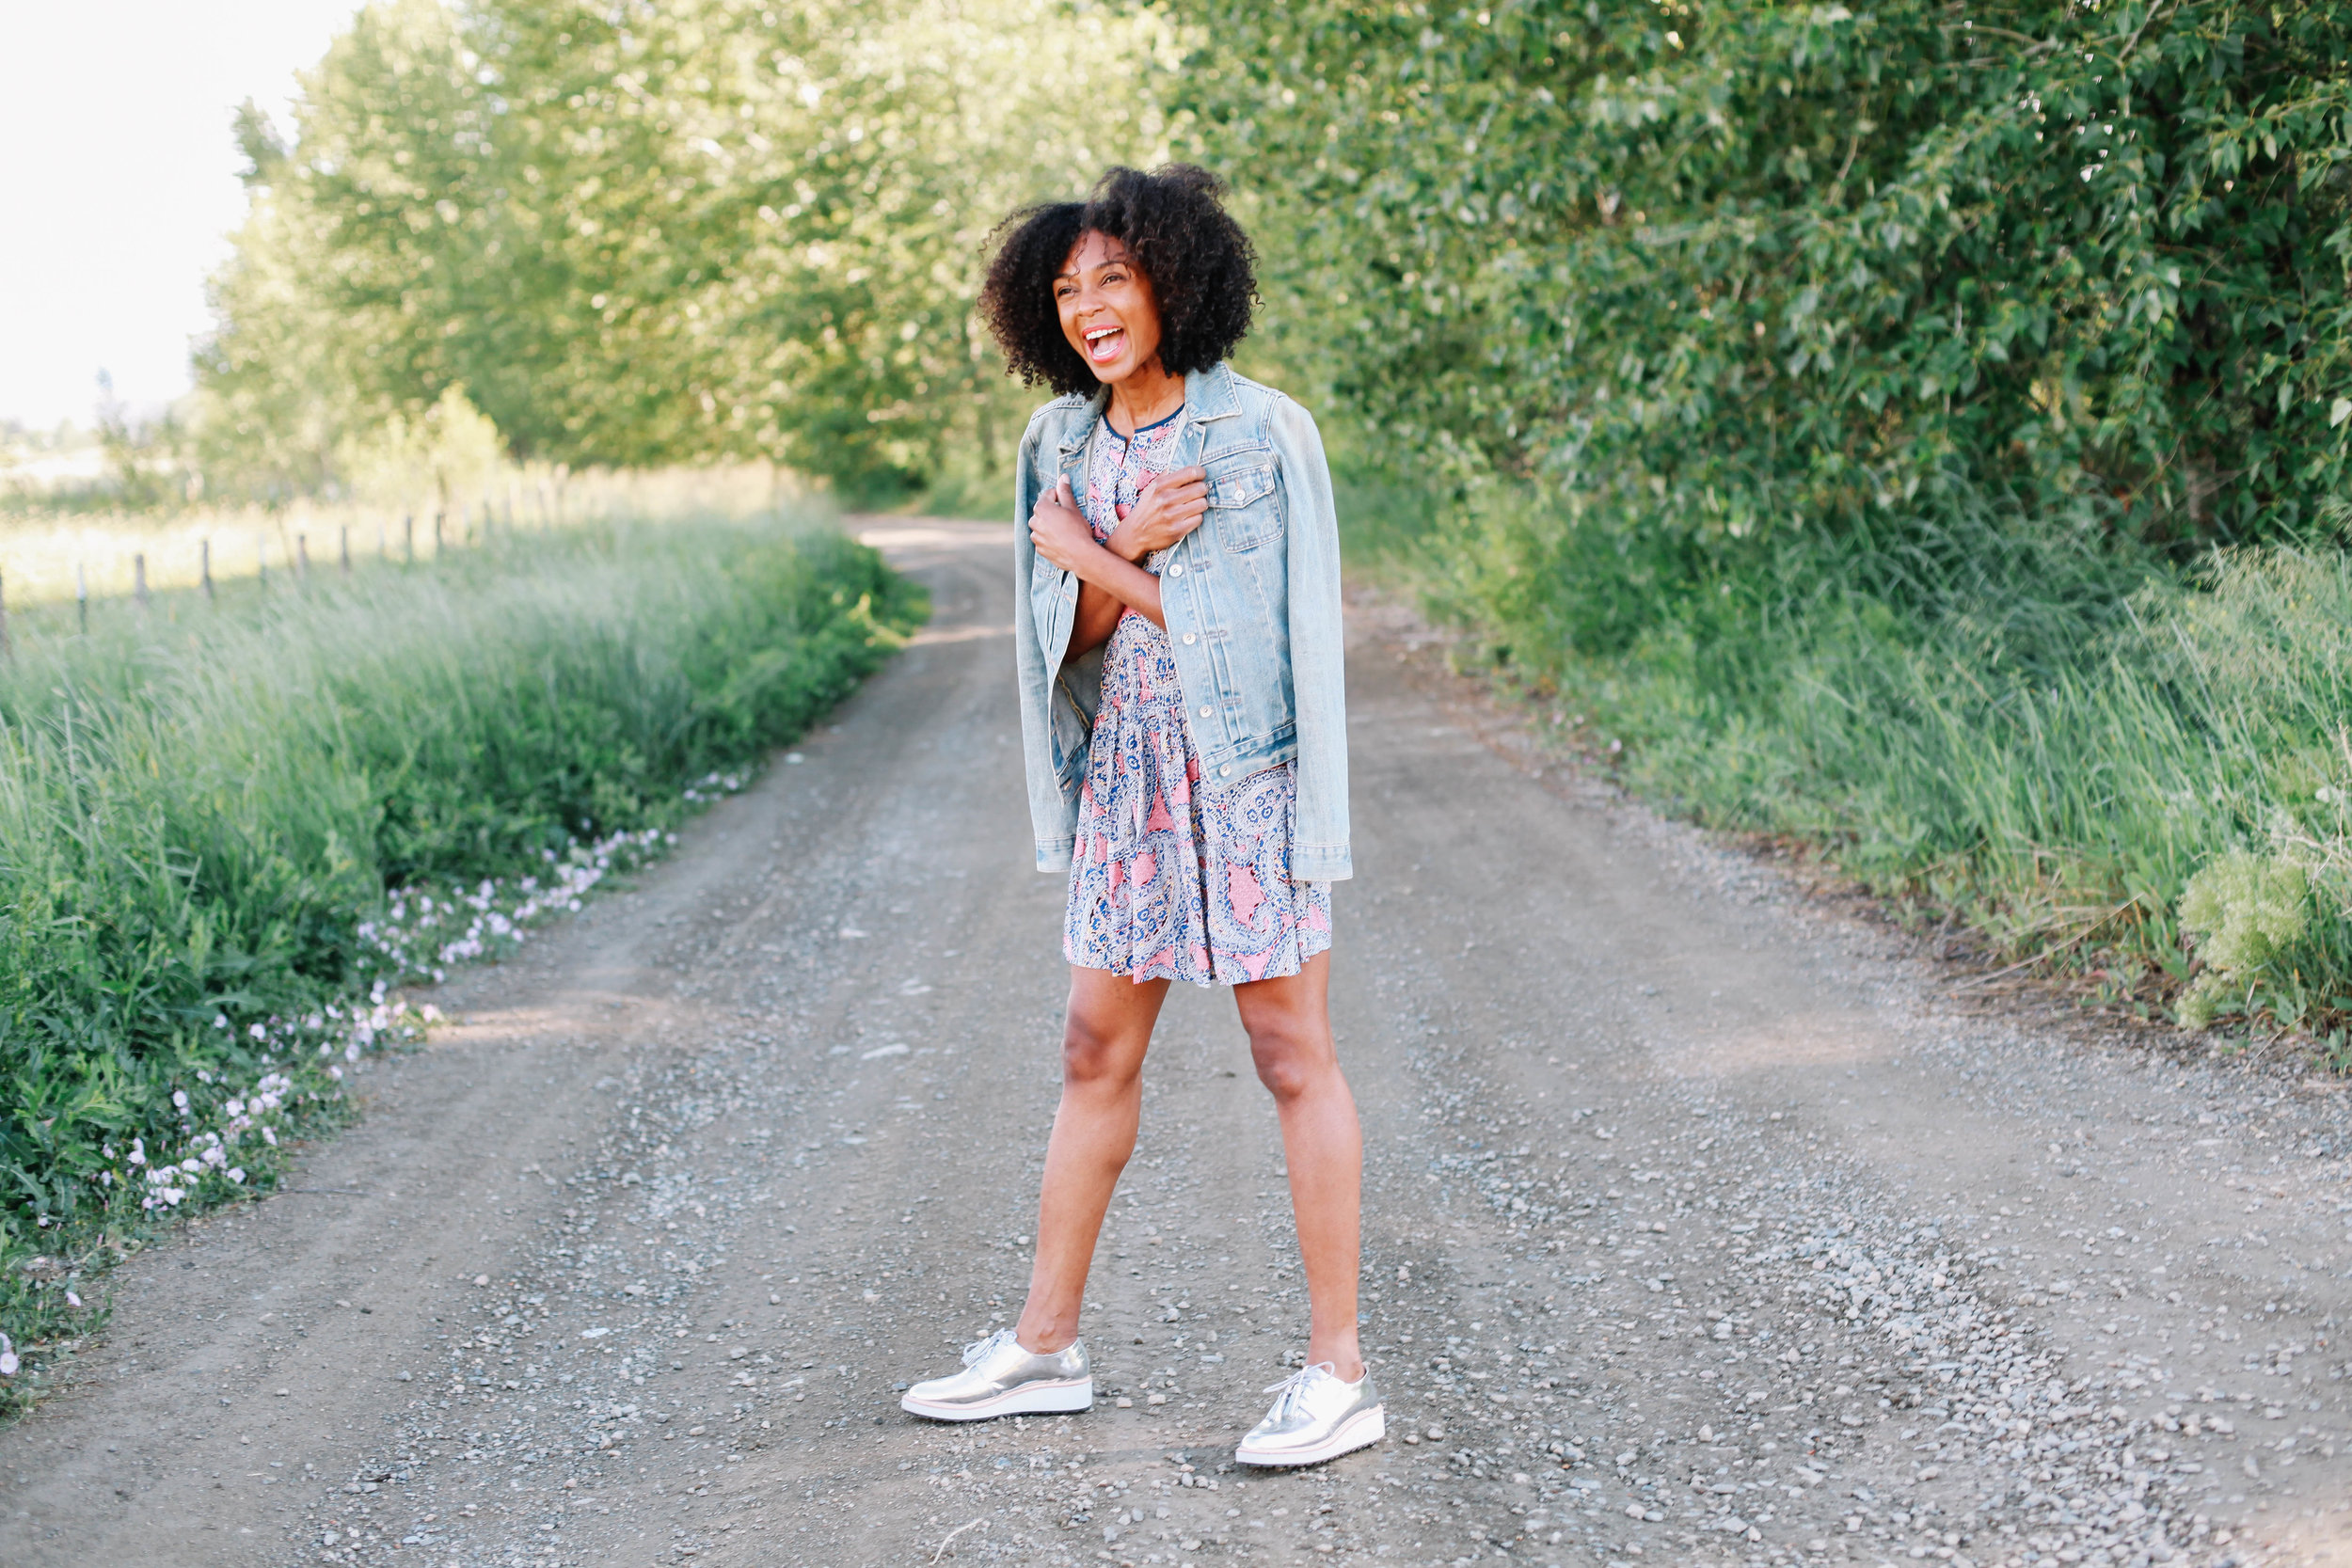 denim jacket: Thomas vintage   Dress: JCrew   Shoes: Loeffler Randall